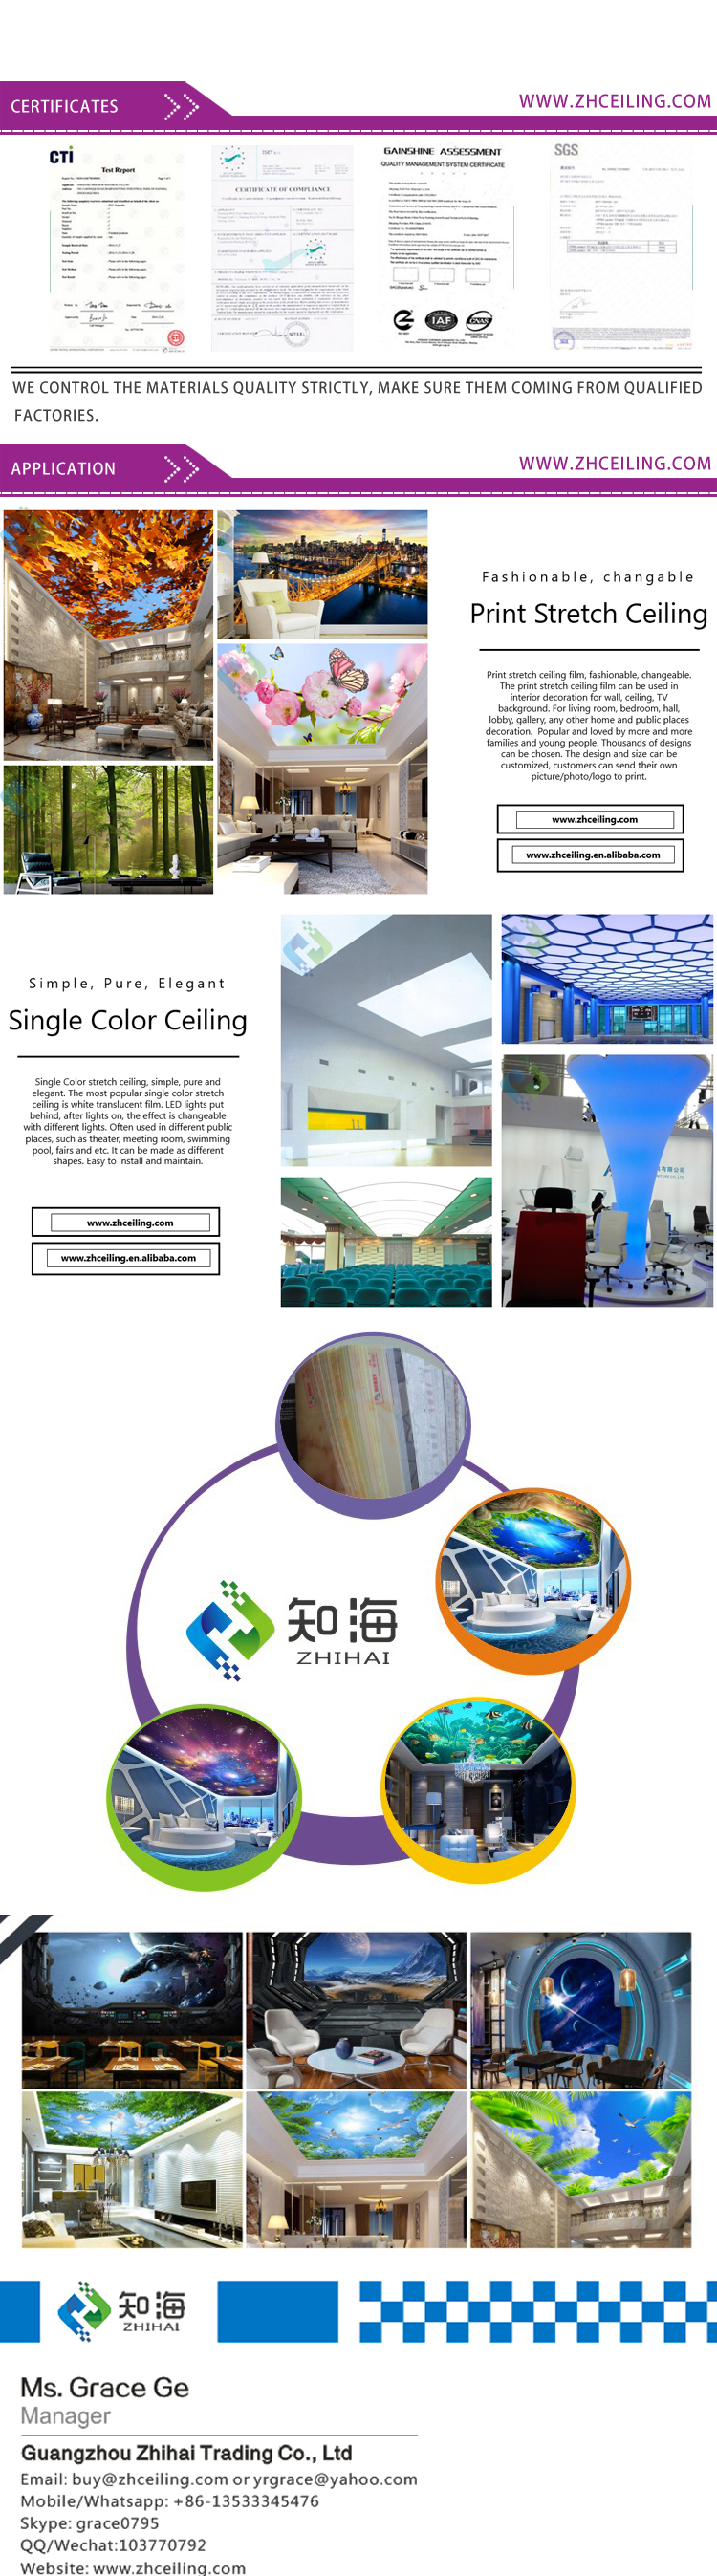 3.2mWx2.1mH per piece New Morden Suspended Tiles ZH Ceiling 3D Visual peachblossom Print PVC Stretch Ceiling Film